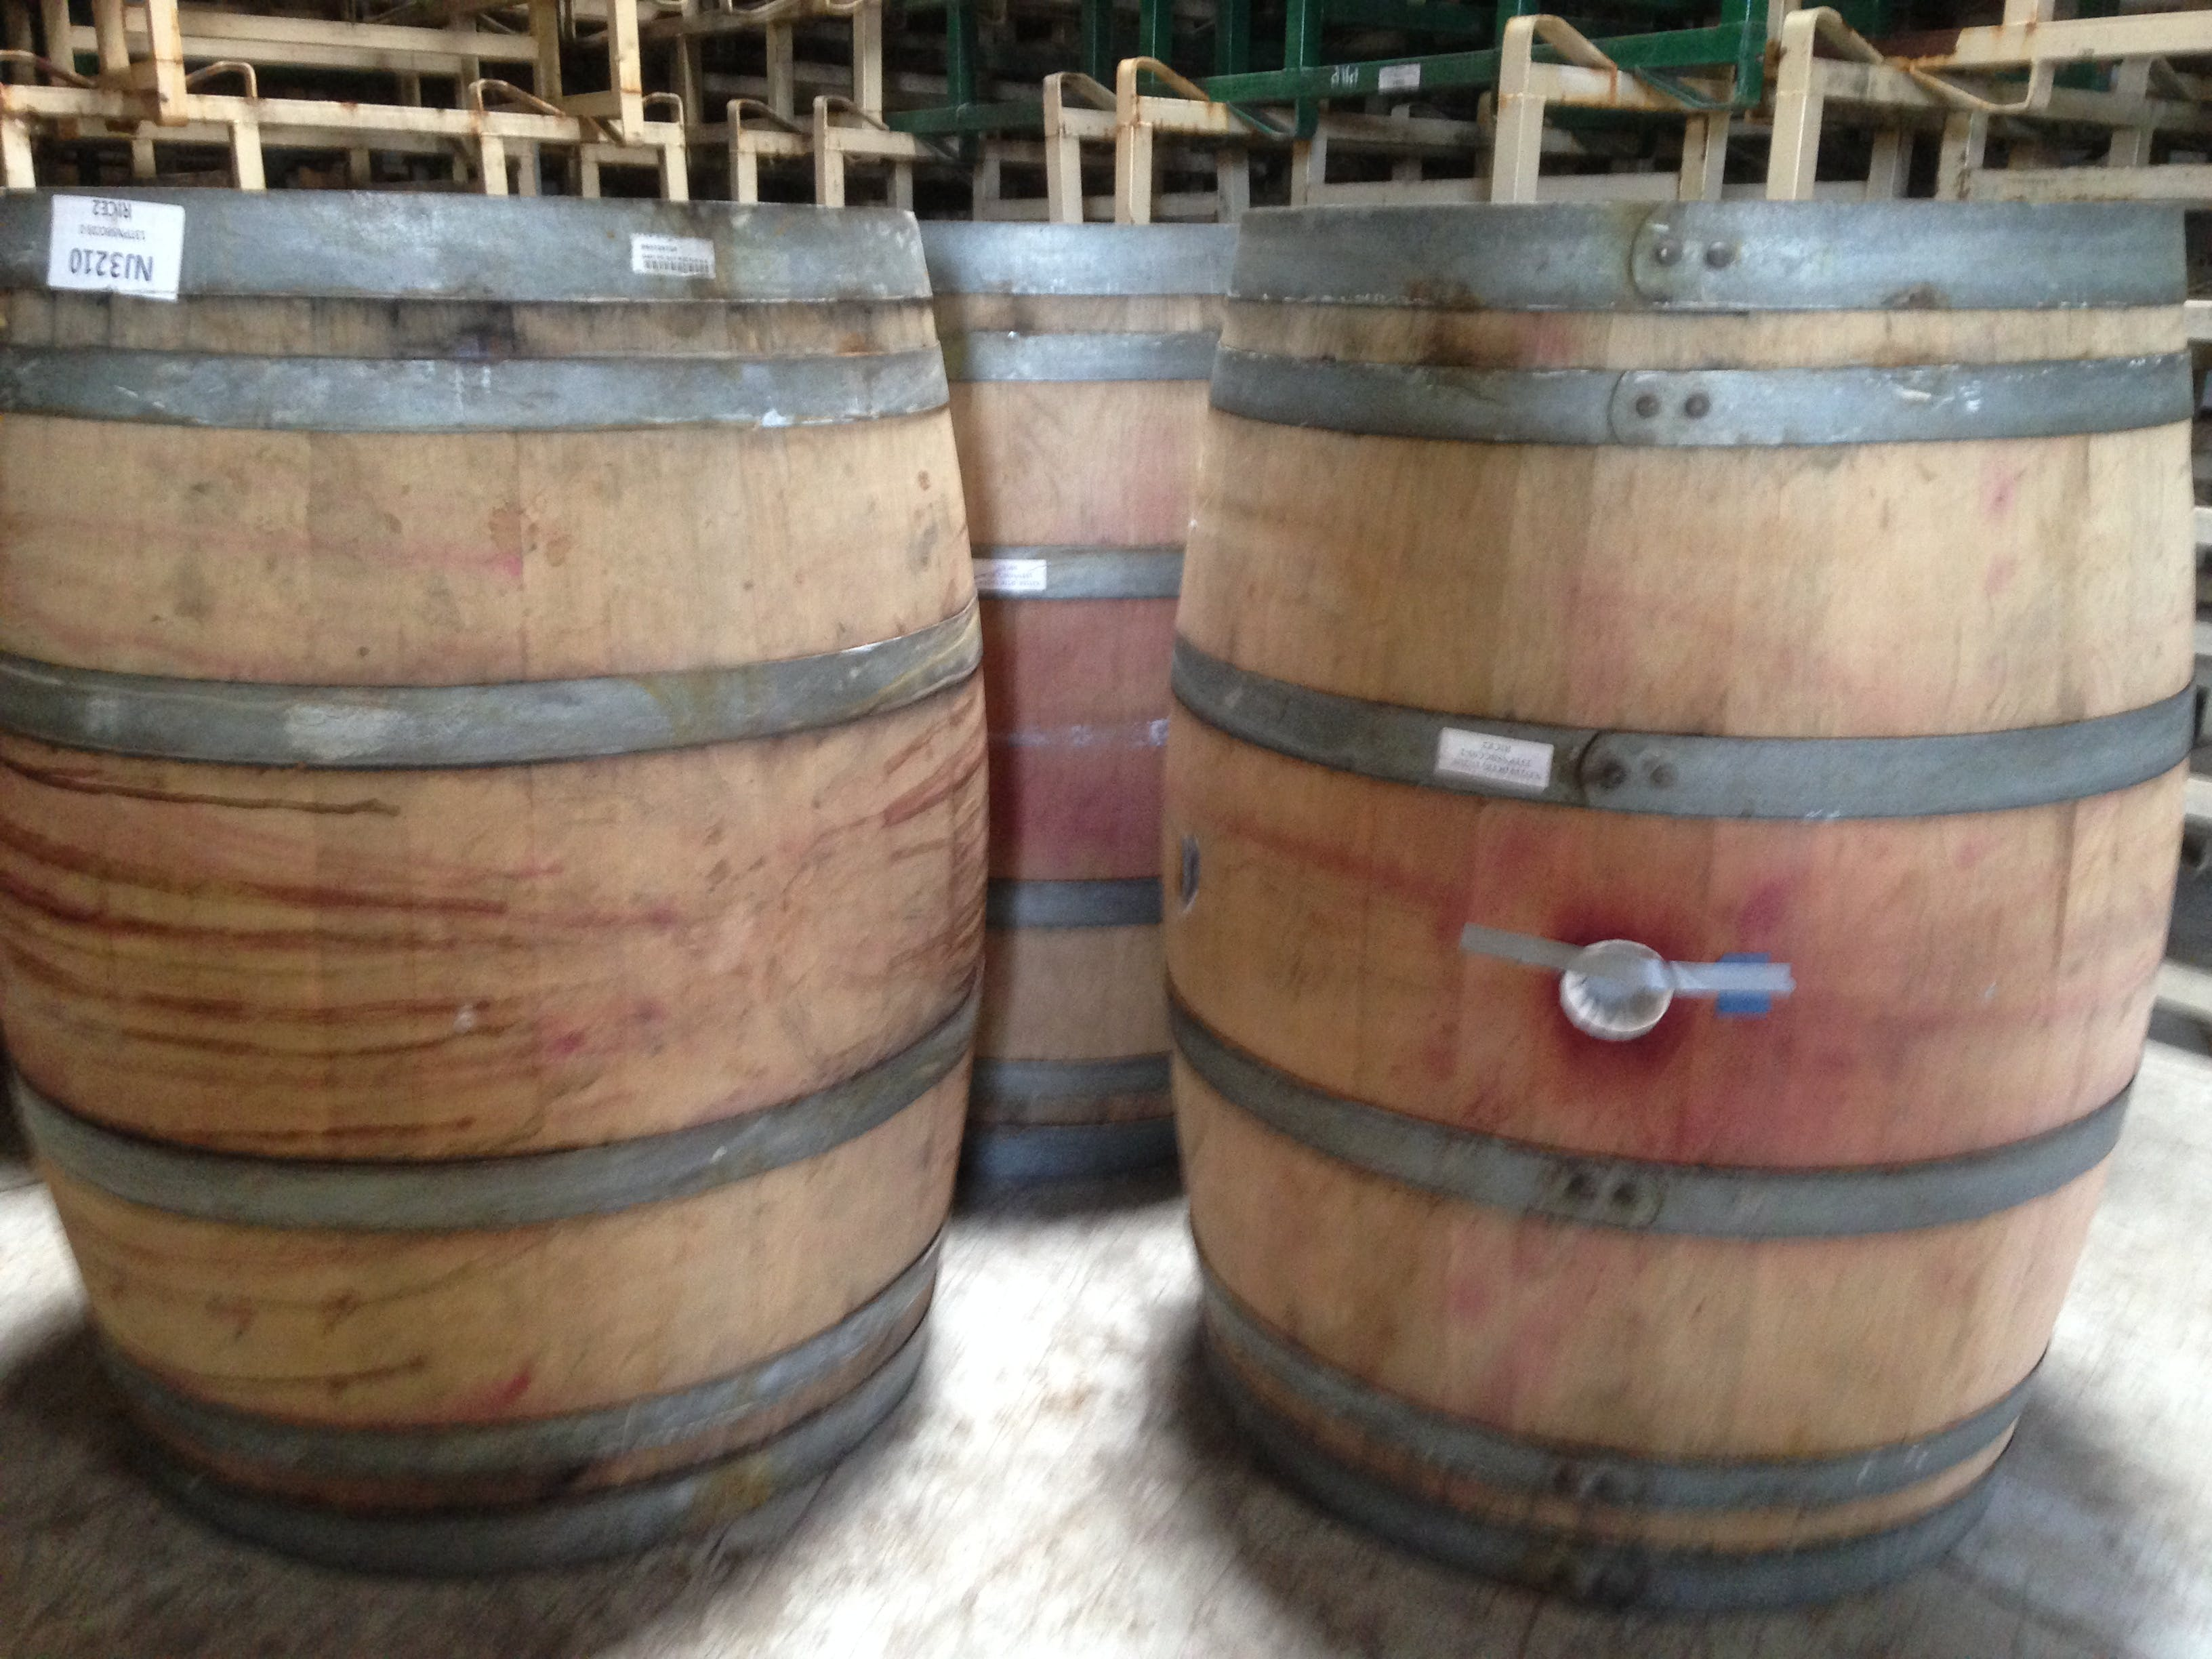 French Oak 2008 Barrel sold by The Barrel Broker